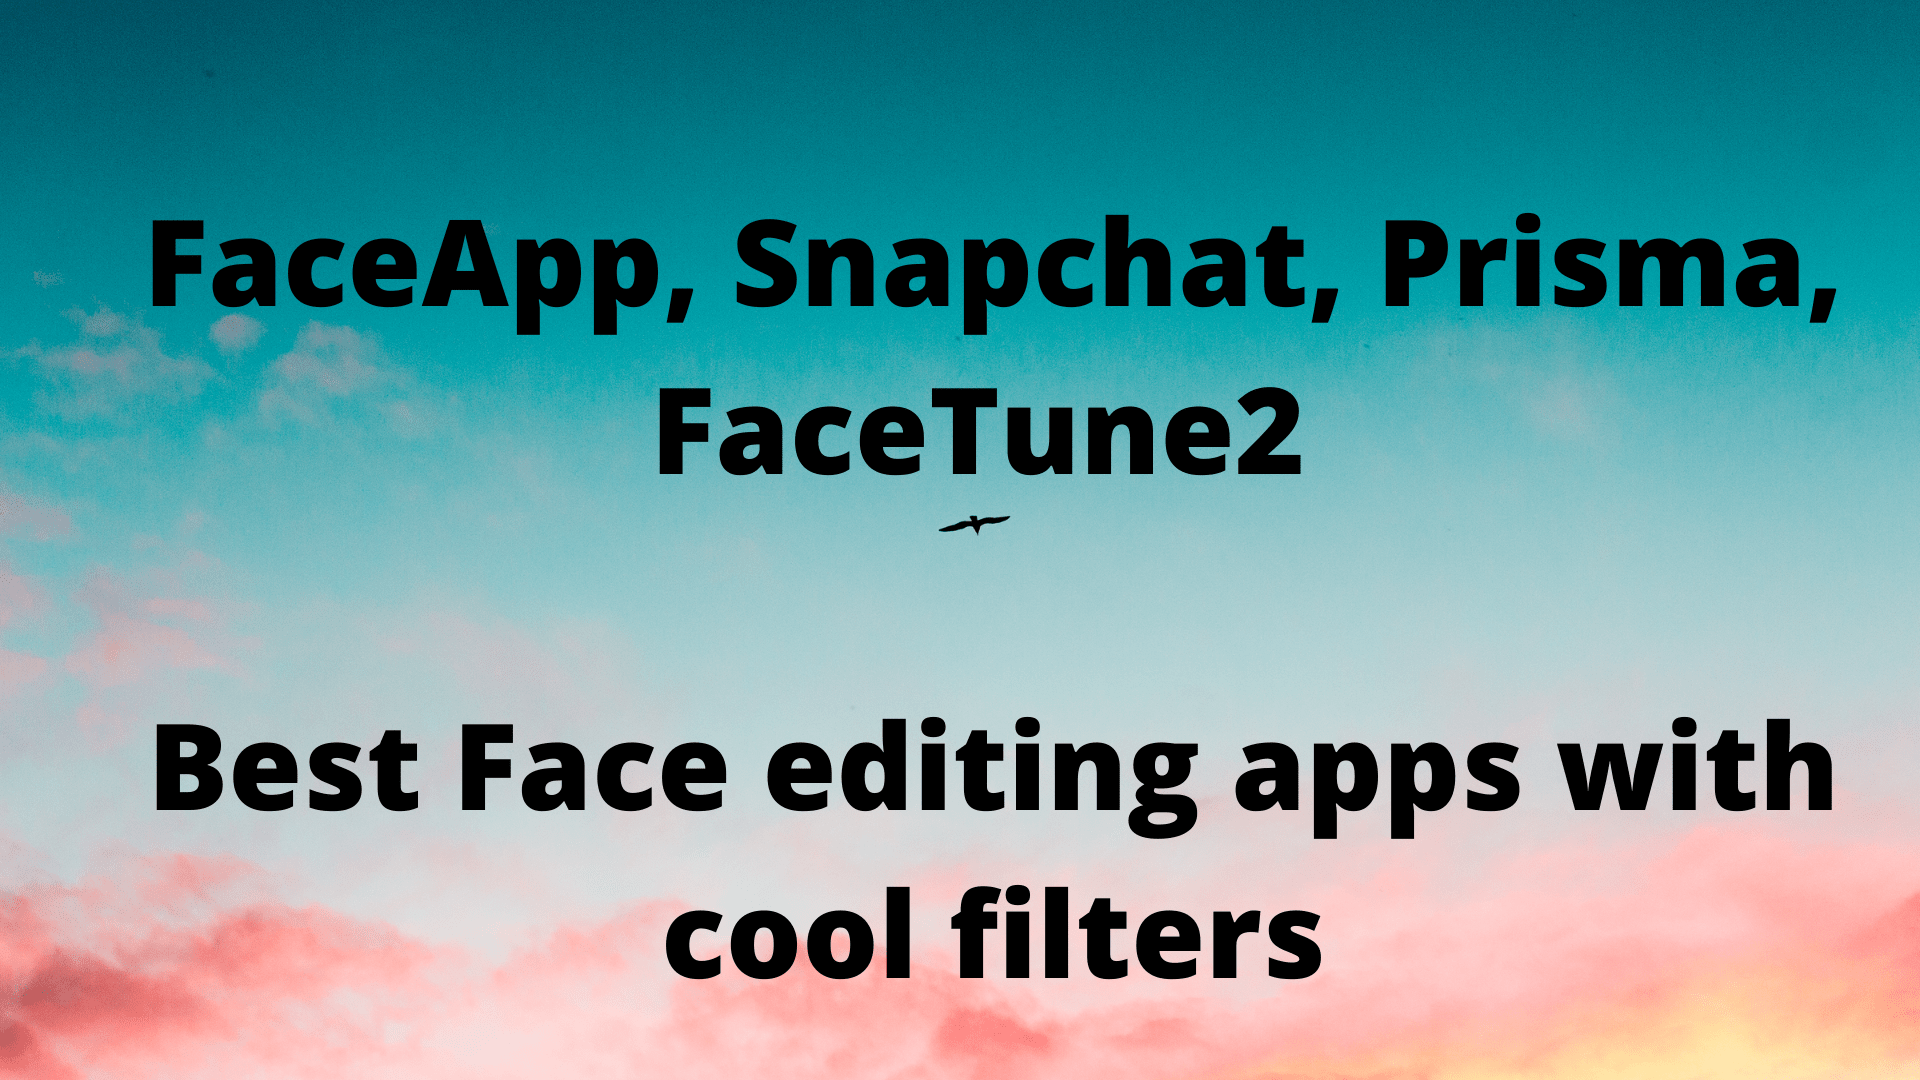 FaceApp, Snapchat, Prisma, FaceTune2 Best Face editing apps with cool filters